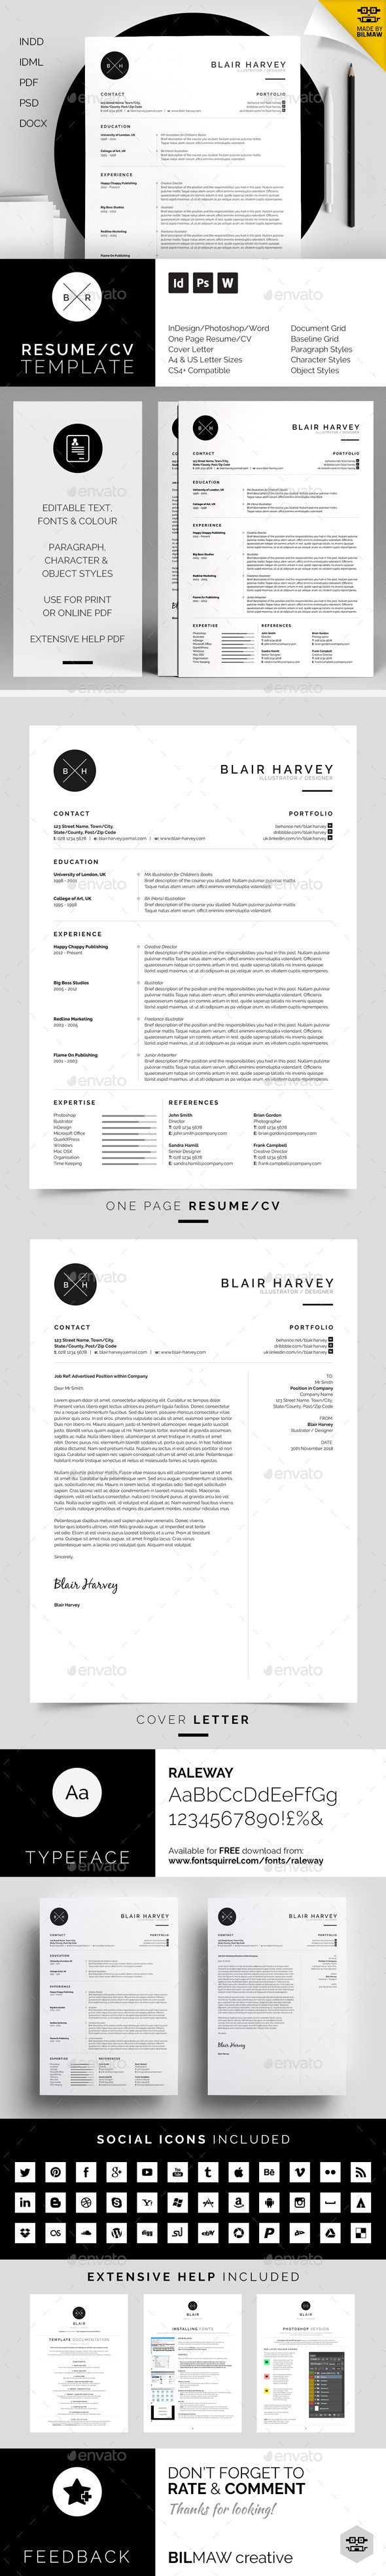 cover letter template for receptionist%0A simple design focusing on experience  which includes a single page resume cv  and cover